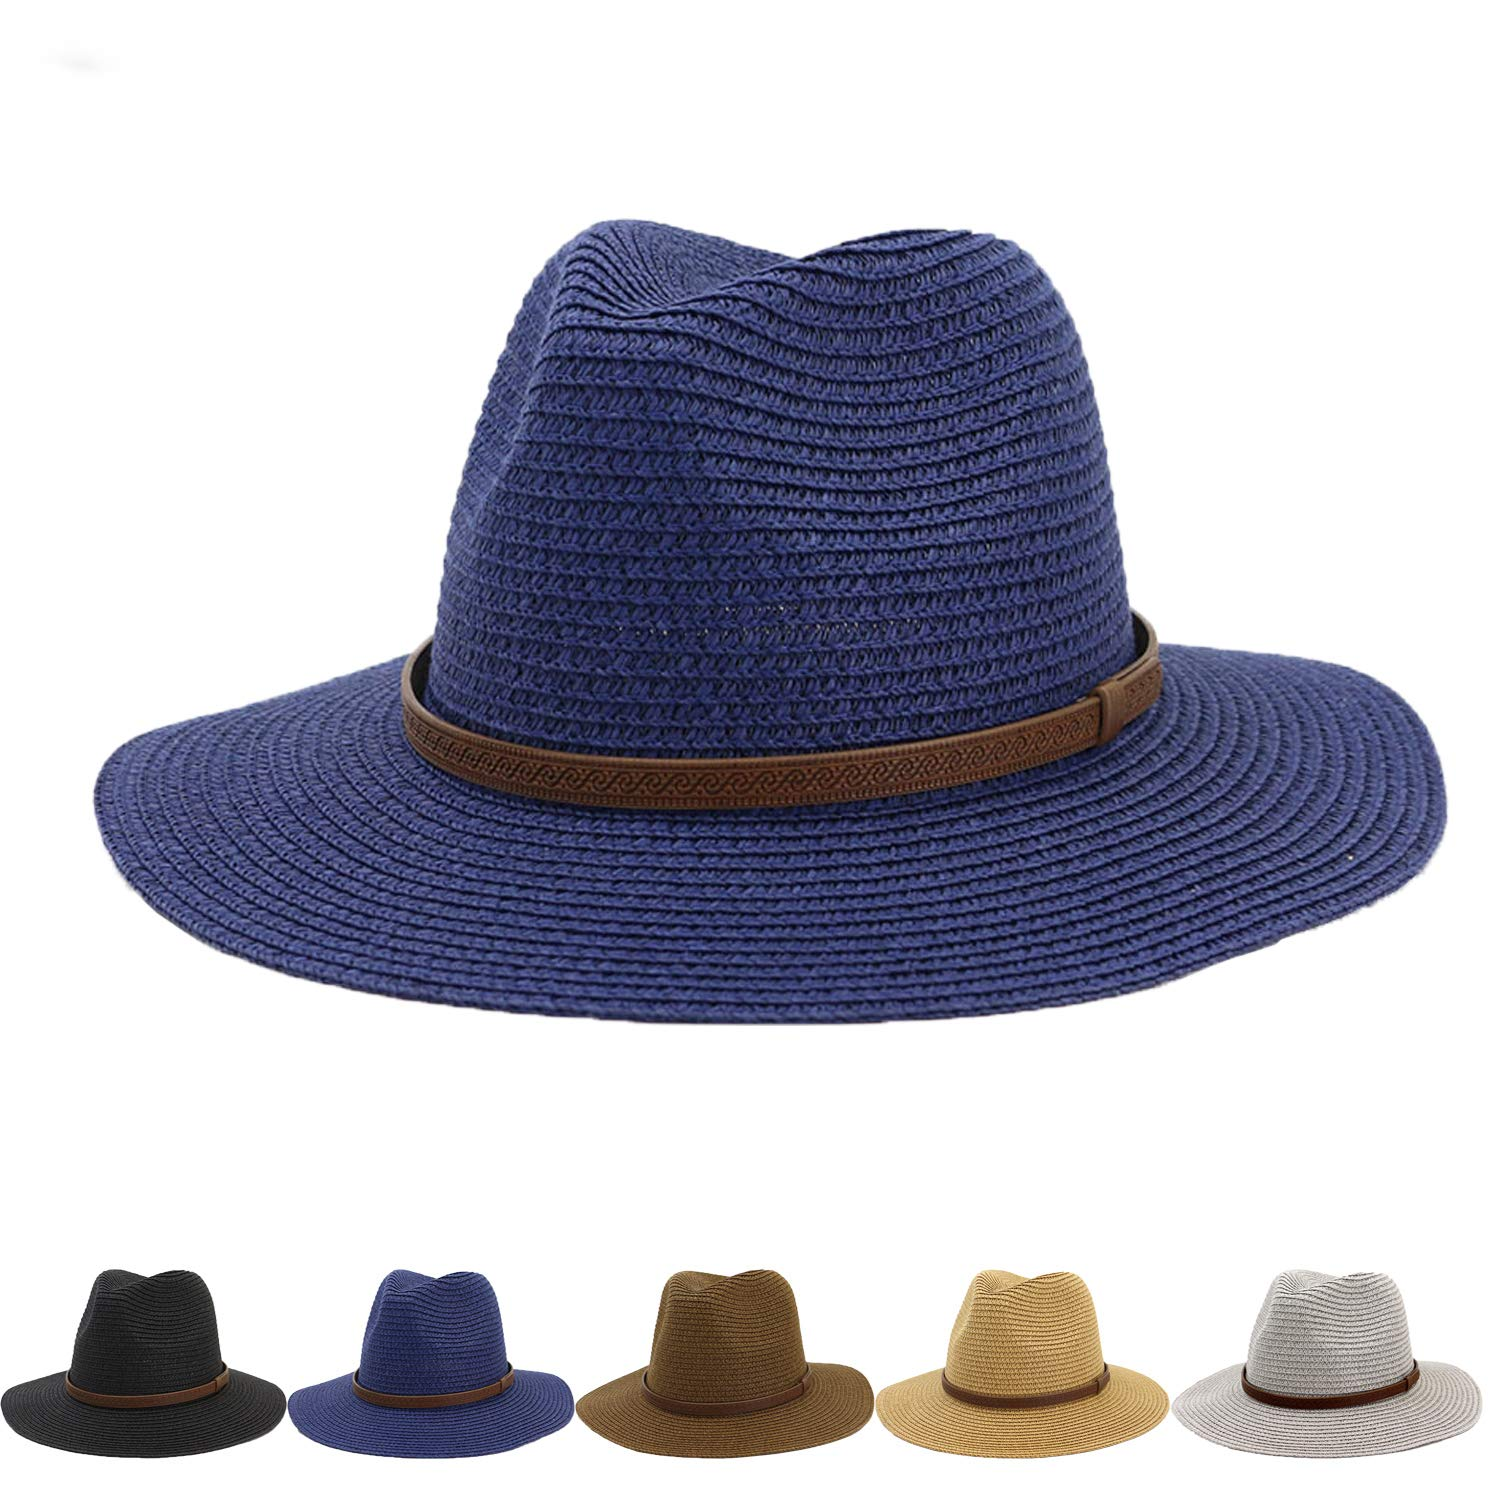 Vintage Unisex Fedora Hat Classic Timeless Light Weight Beach Outdoor Sunscreen Sunshade Beach Sunhat